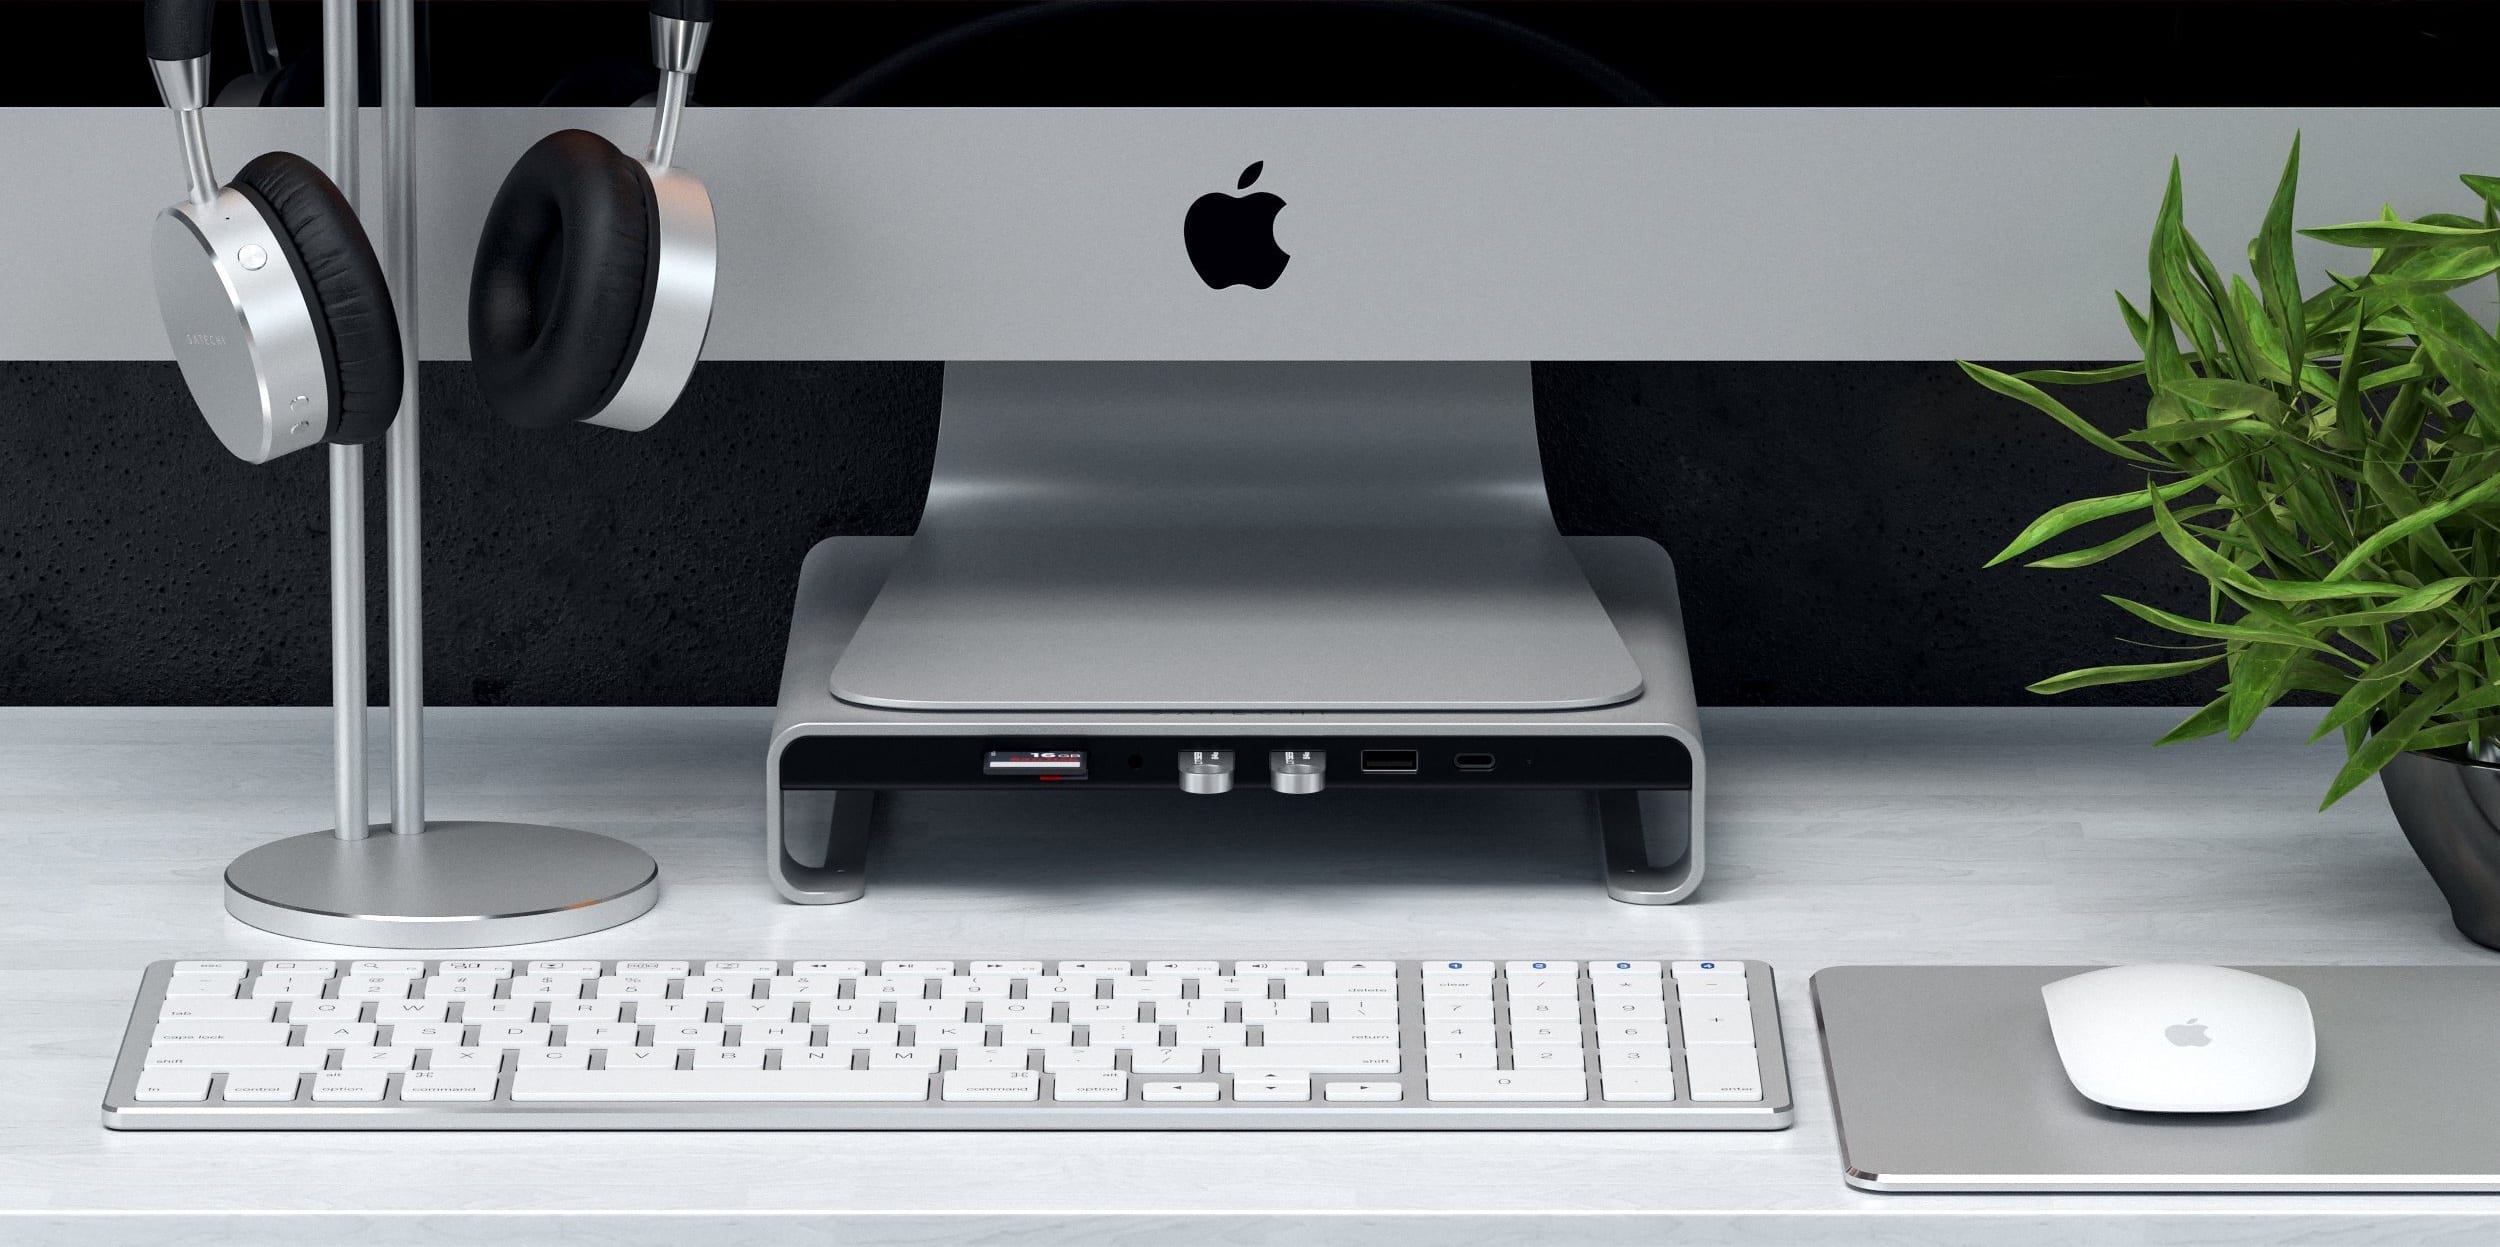 Satechi Type-C Aluminium Monitor Stand Hub for iMac